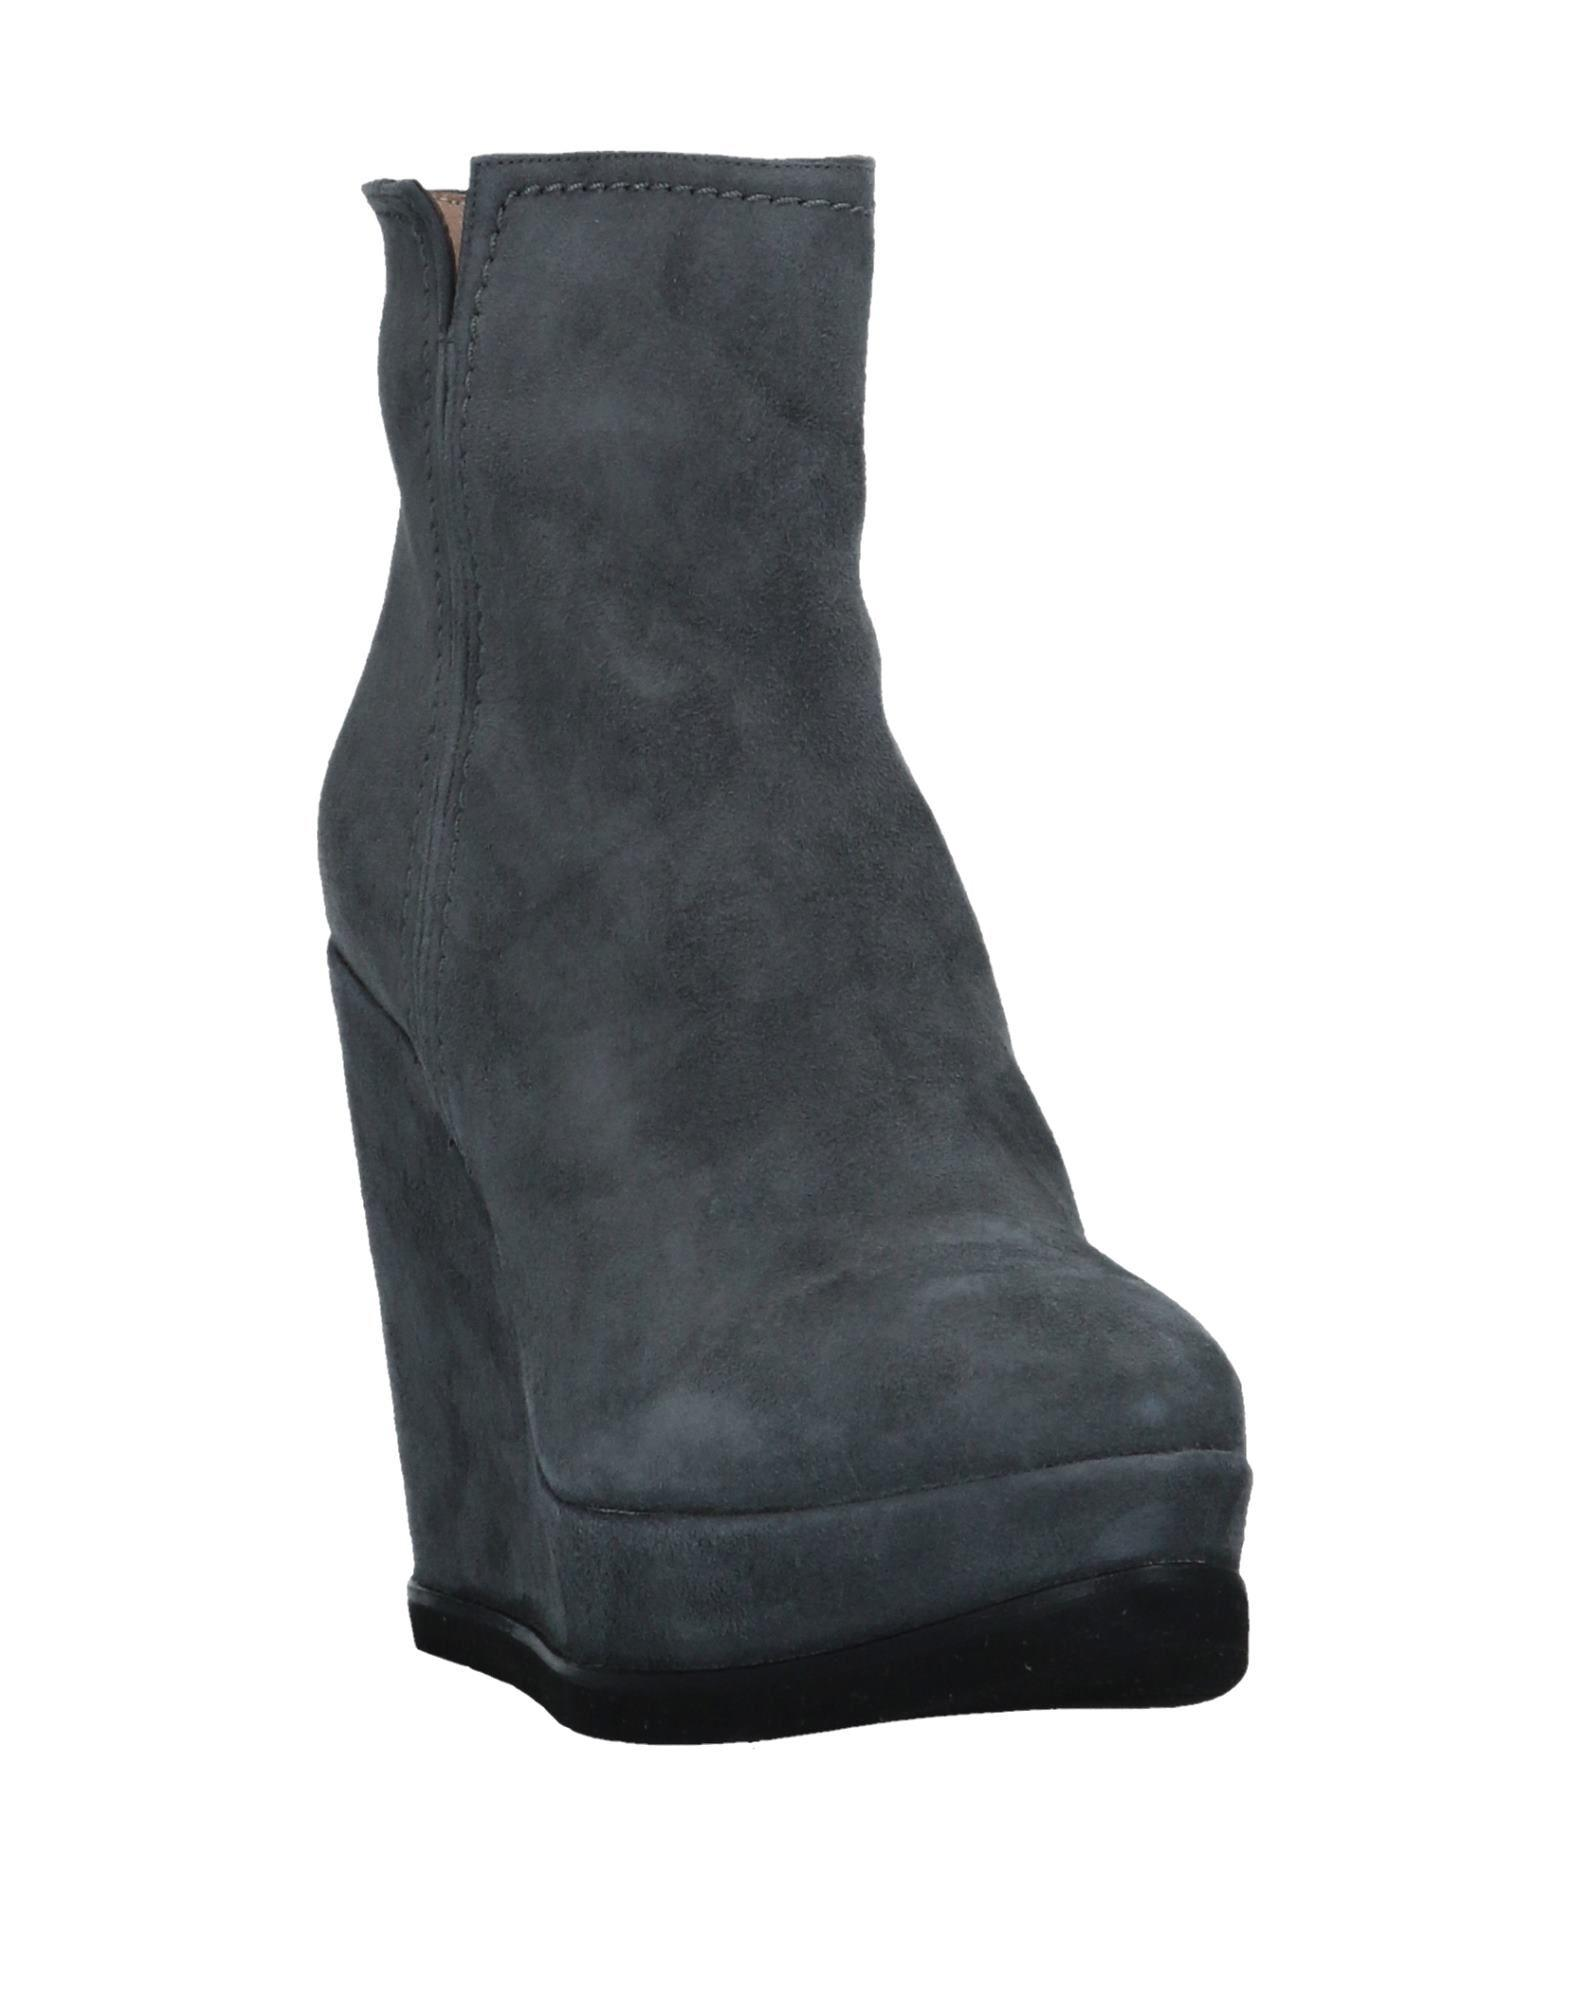 Pura López Leather Ankle Boots in Grey (Grey)